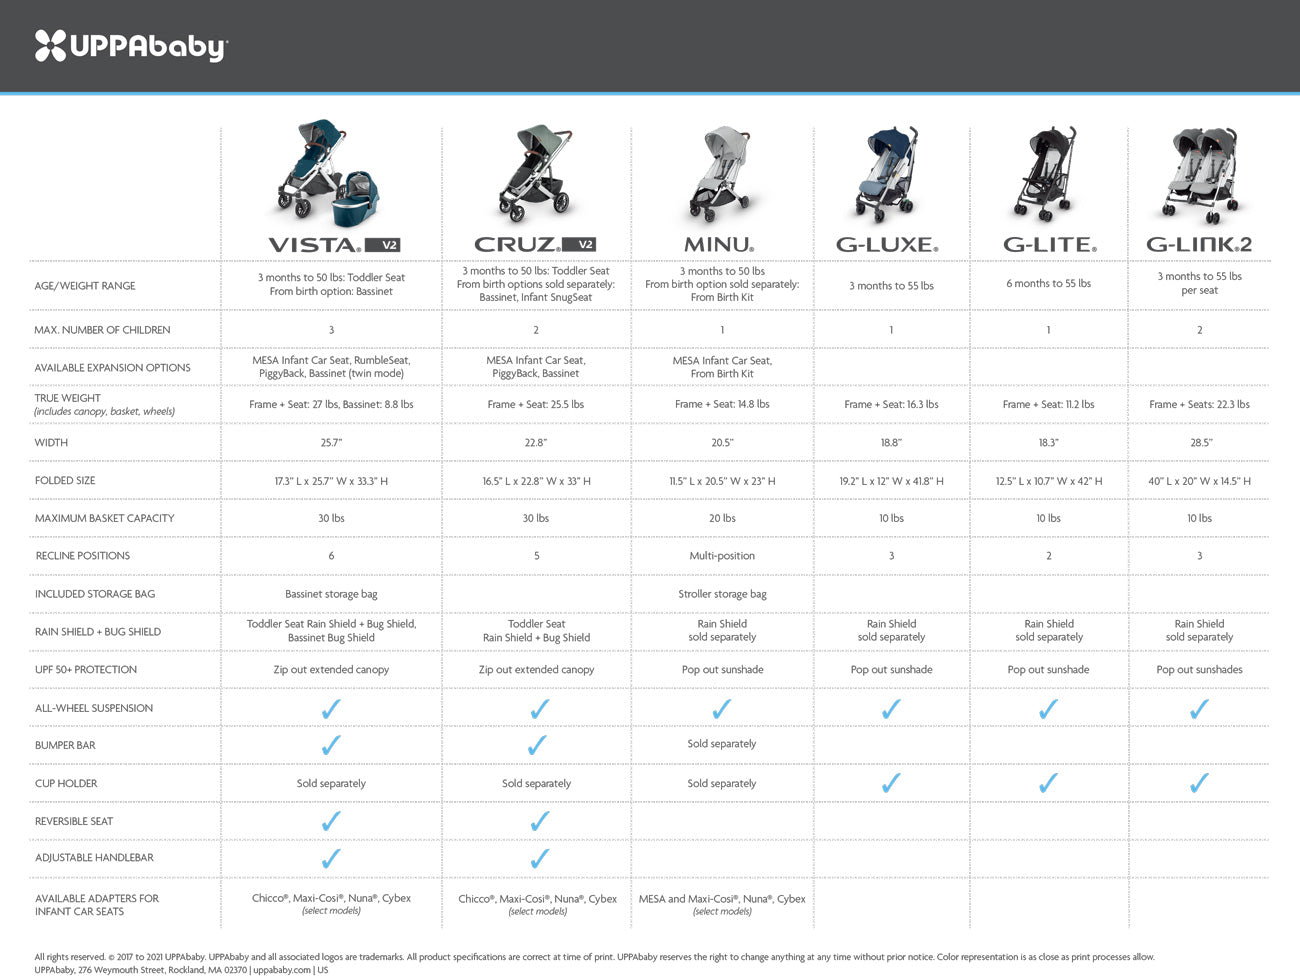 UPPAbaby Comparison Chart